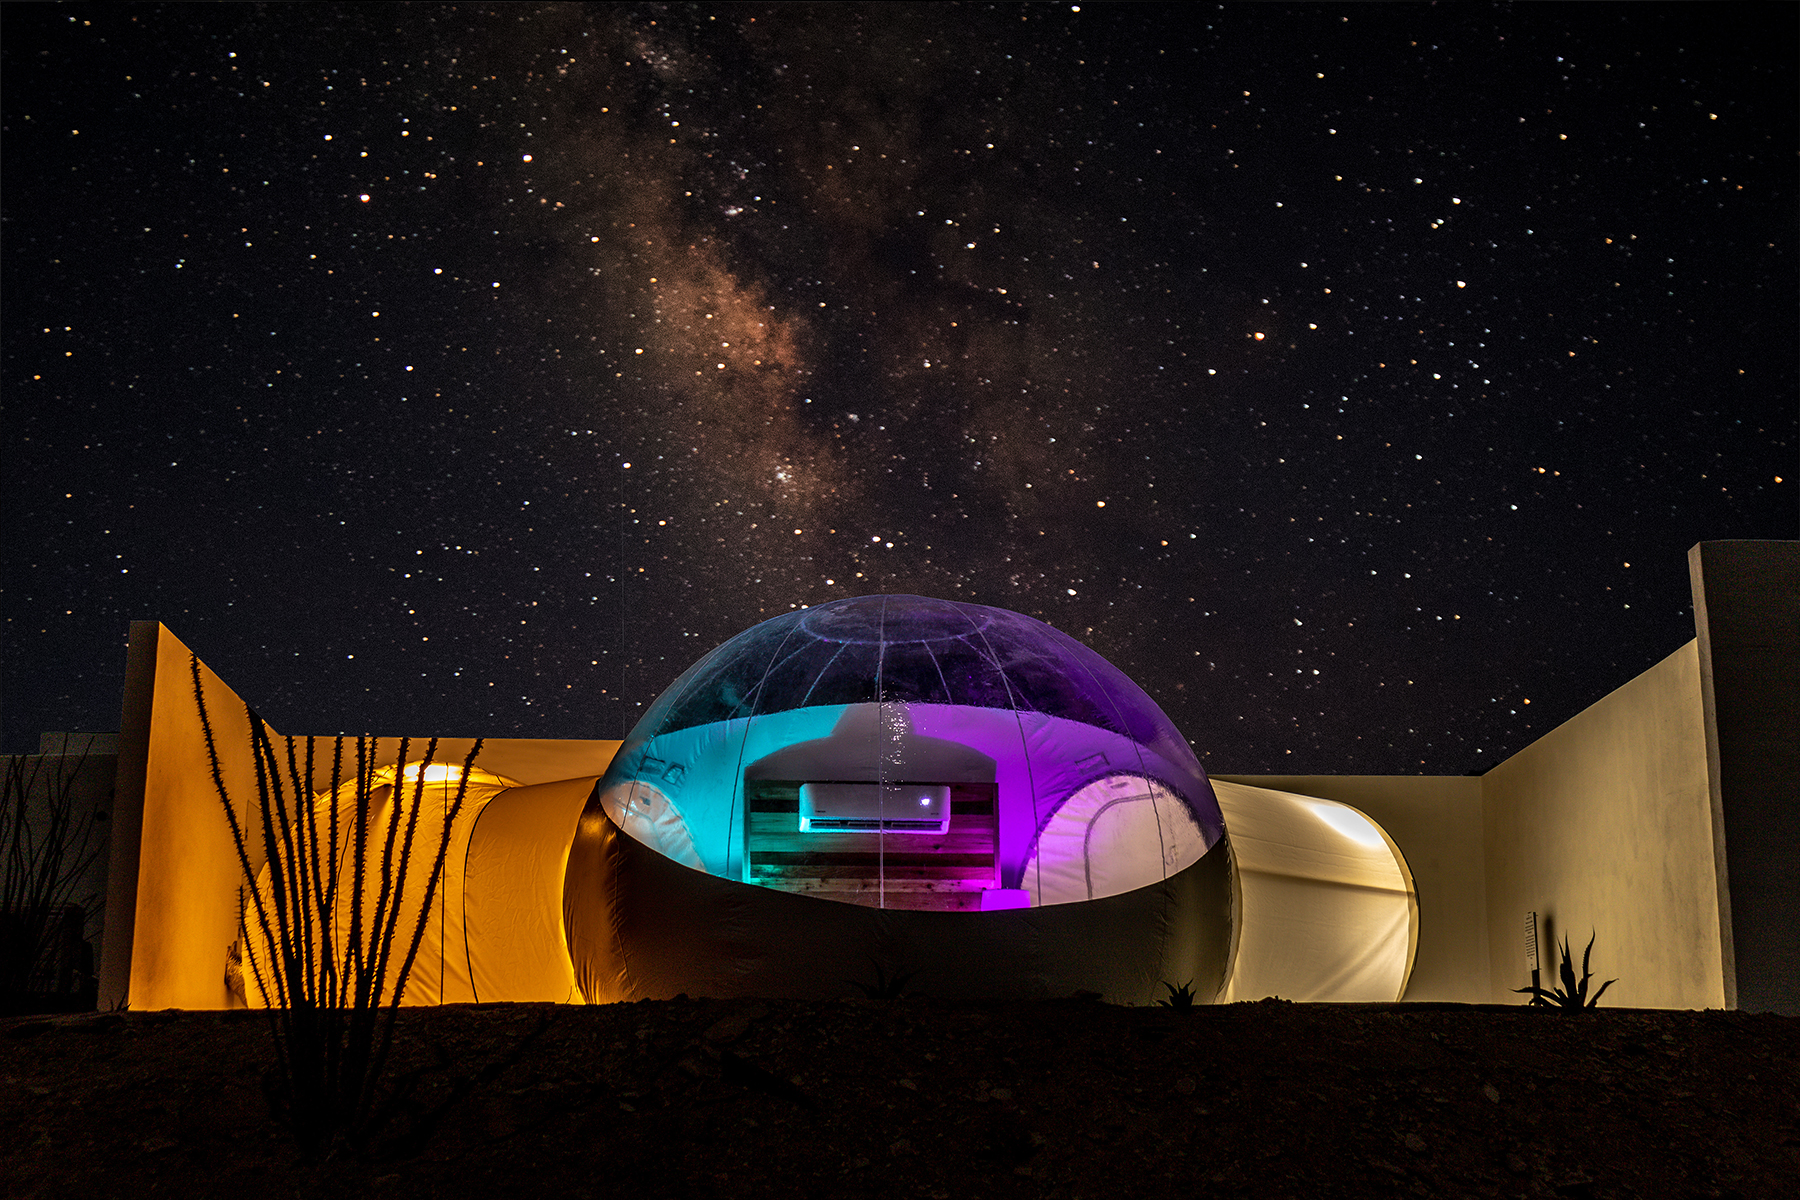 The accomodations at Basecamp Terlingua offer world-class stargazing.